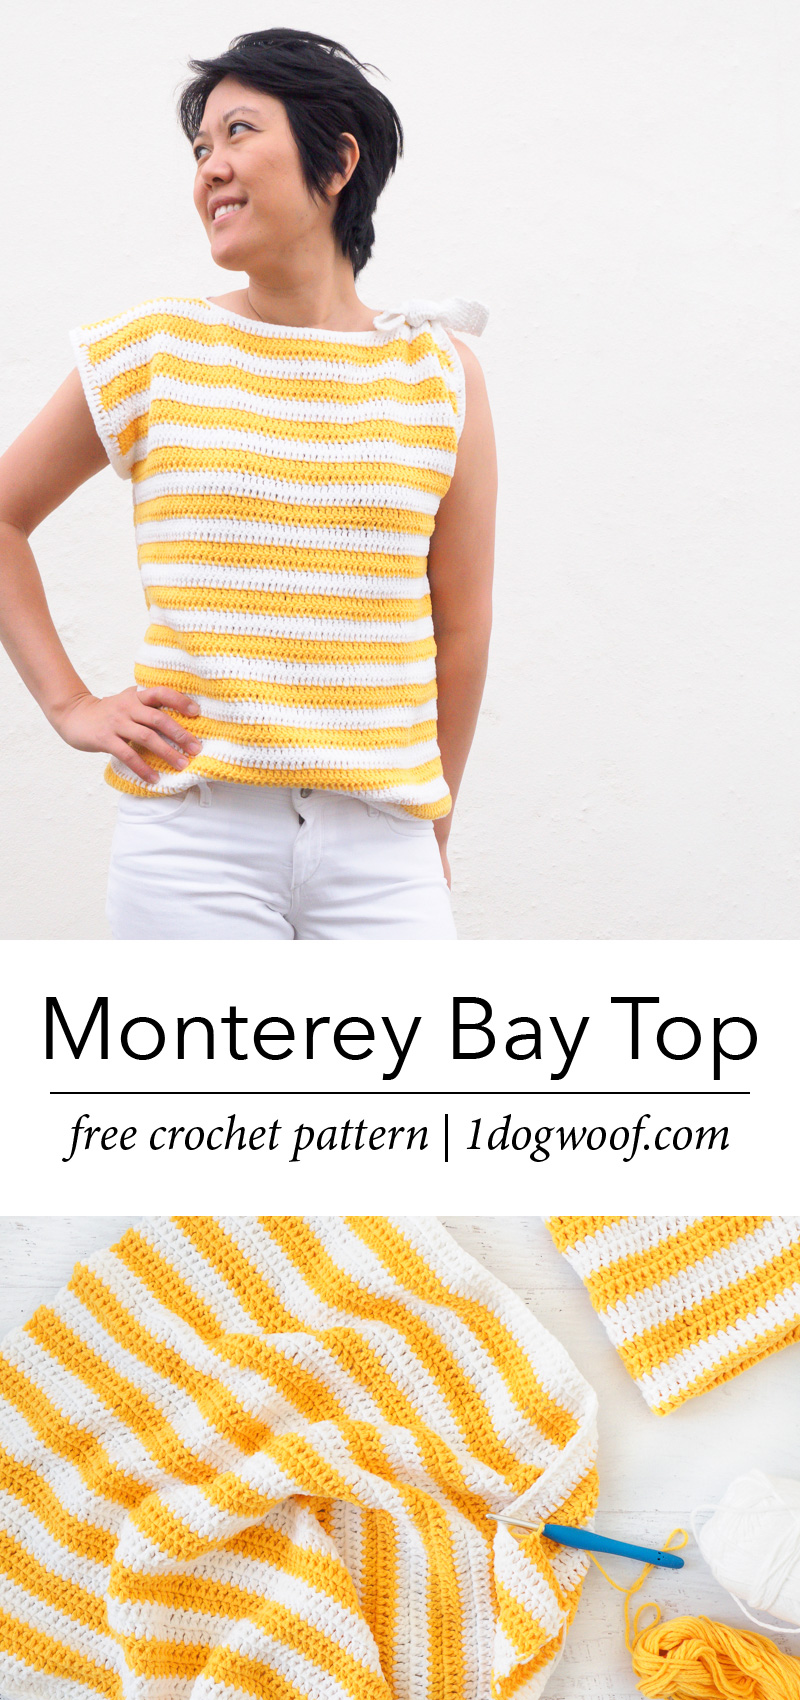 Monterey Bay pin image